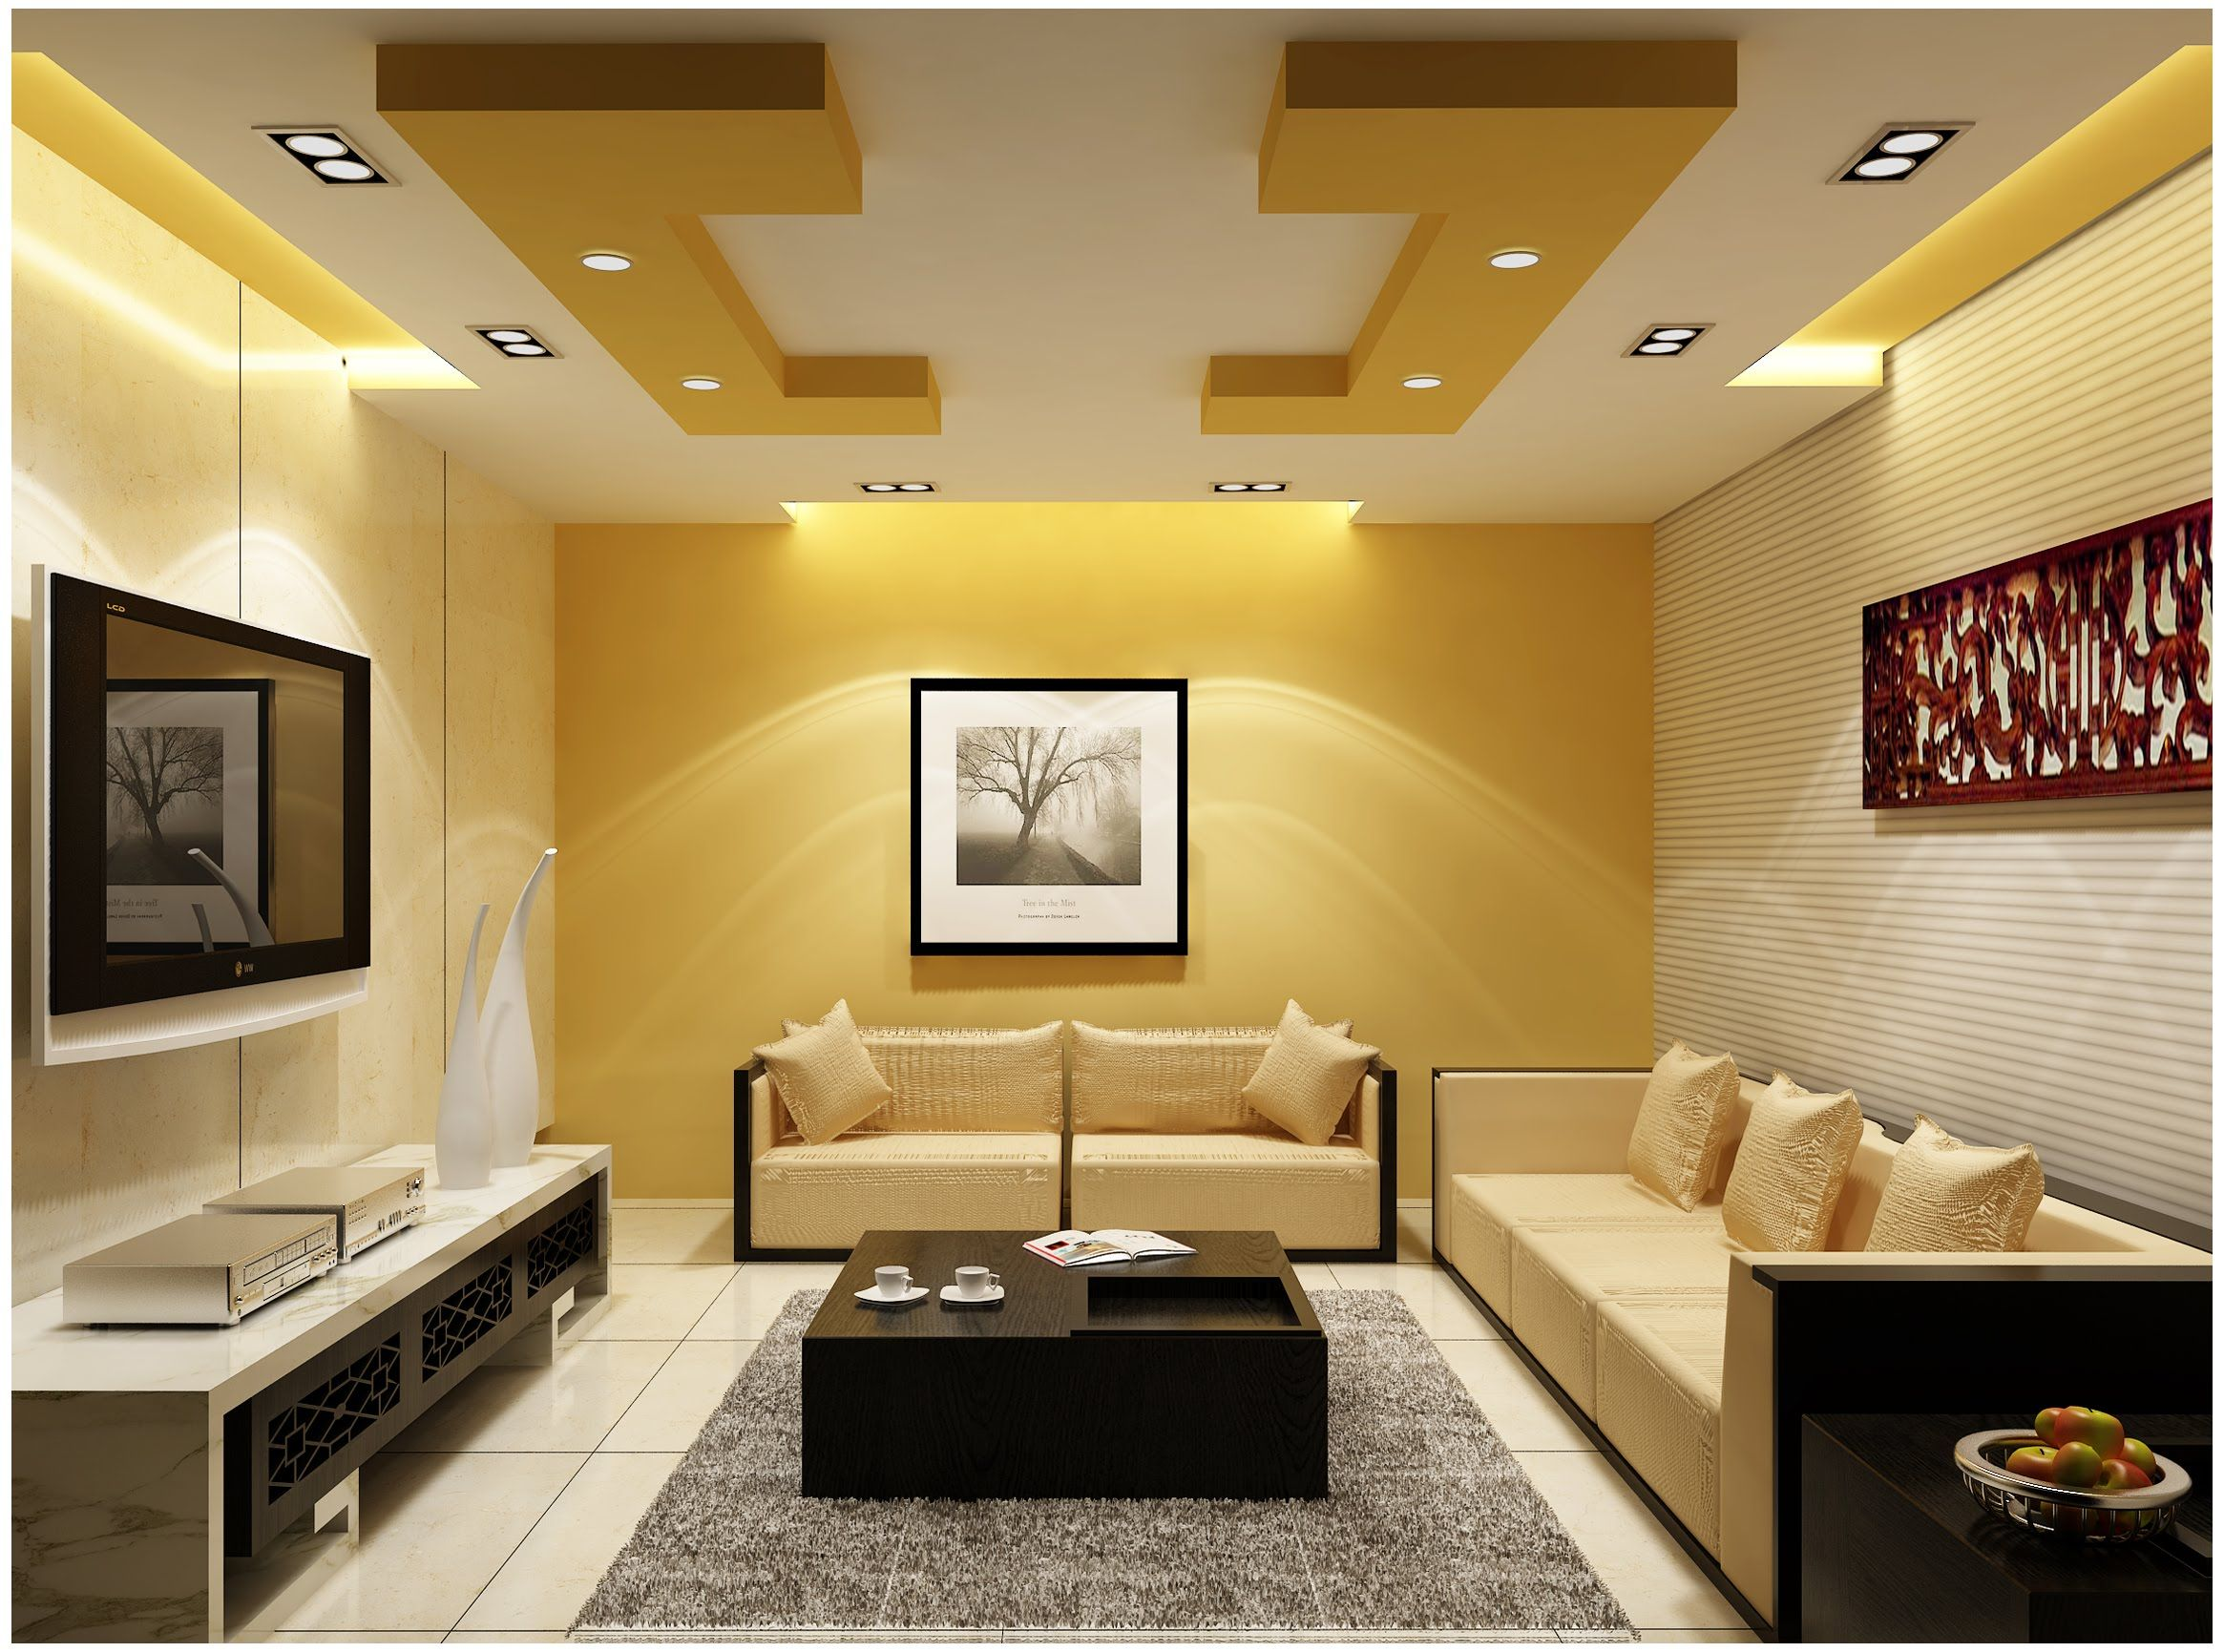 False ceiling design Designs for living room and Ceiling design on Pinterest : ceiling decorating ideas for living room - www.pureclipart.com